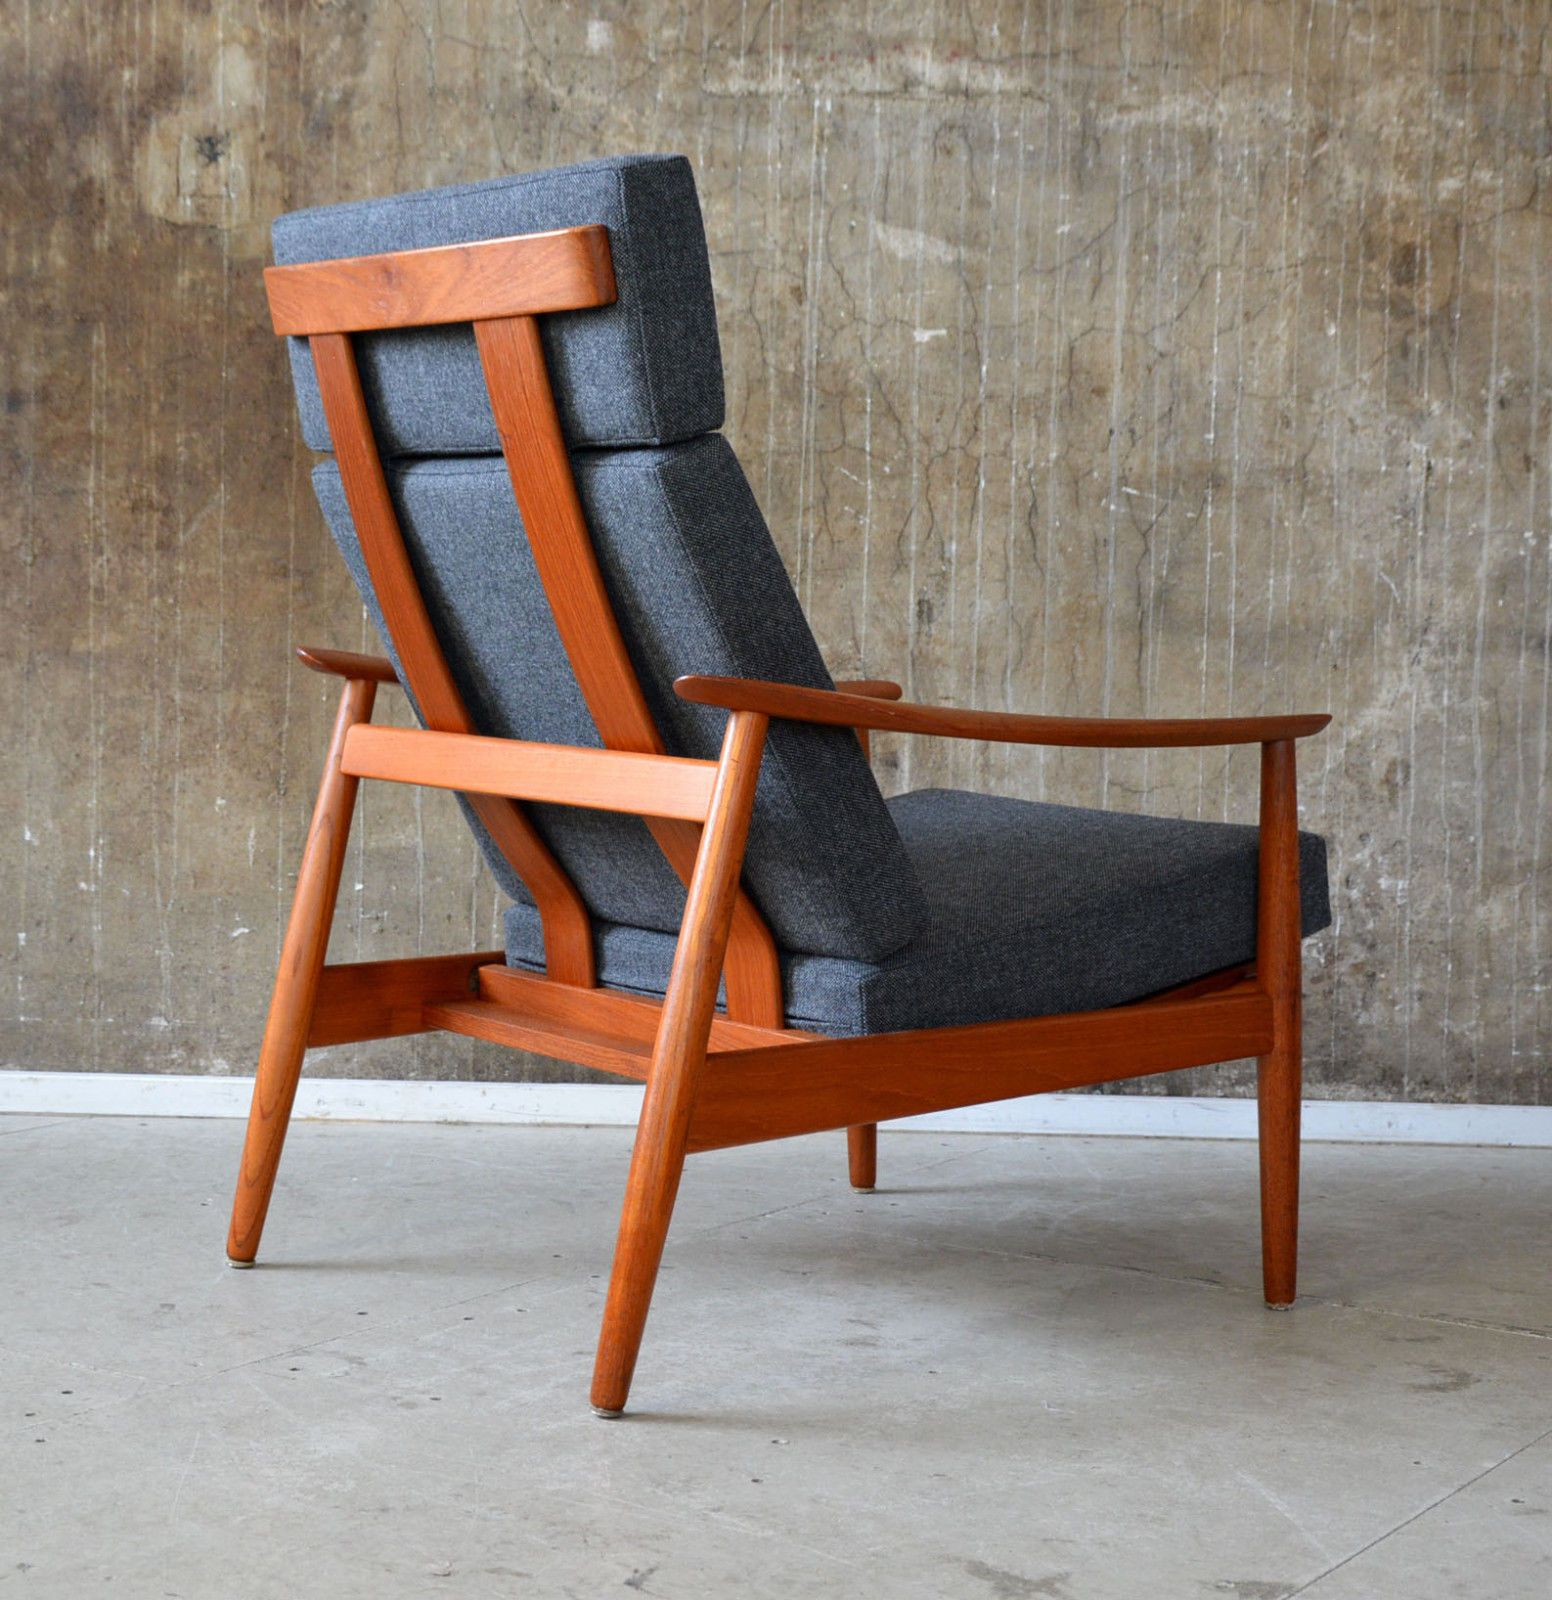 Arne Vodder Sessel 60er Arne Vodder Teak Sessel France Son 60s Easy Chair Danish